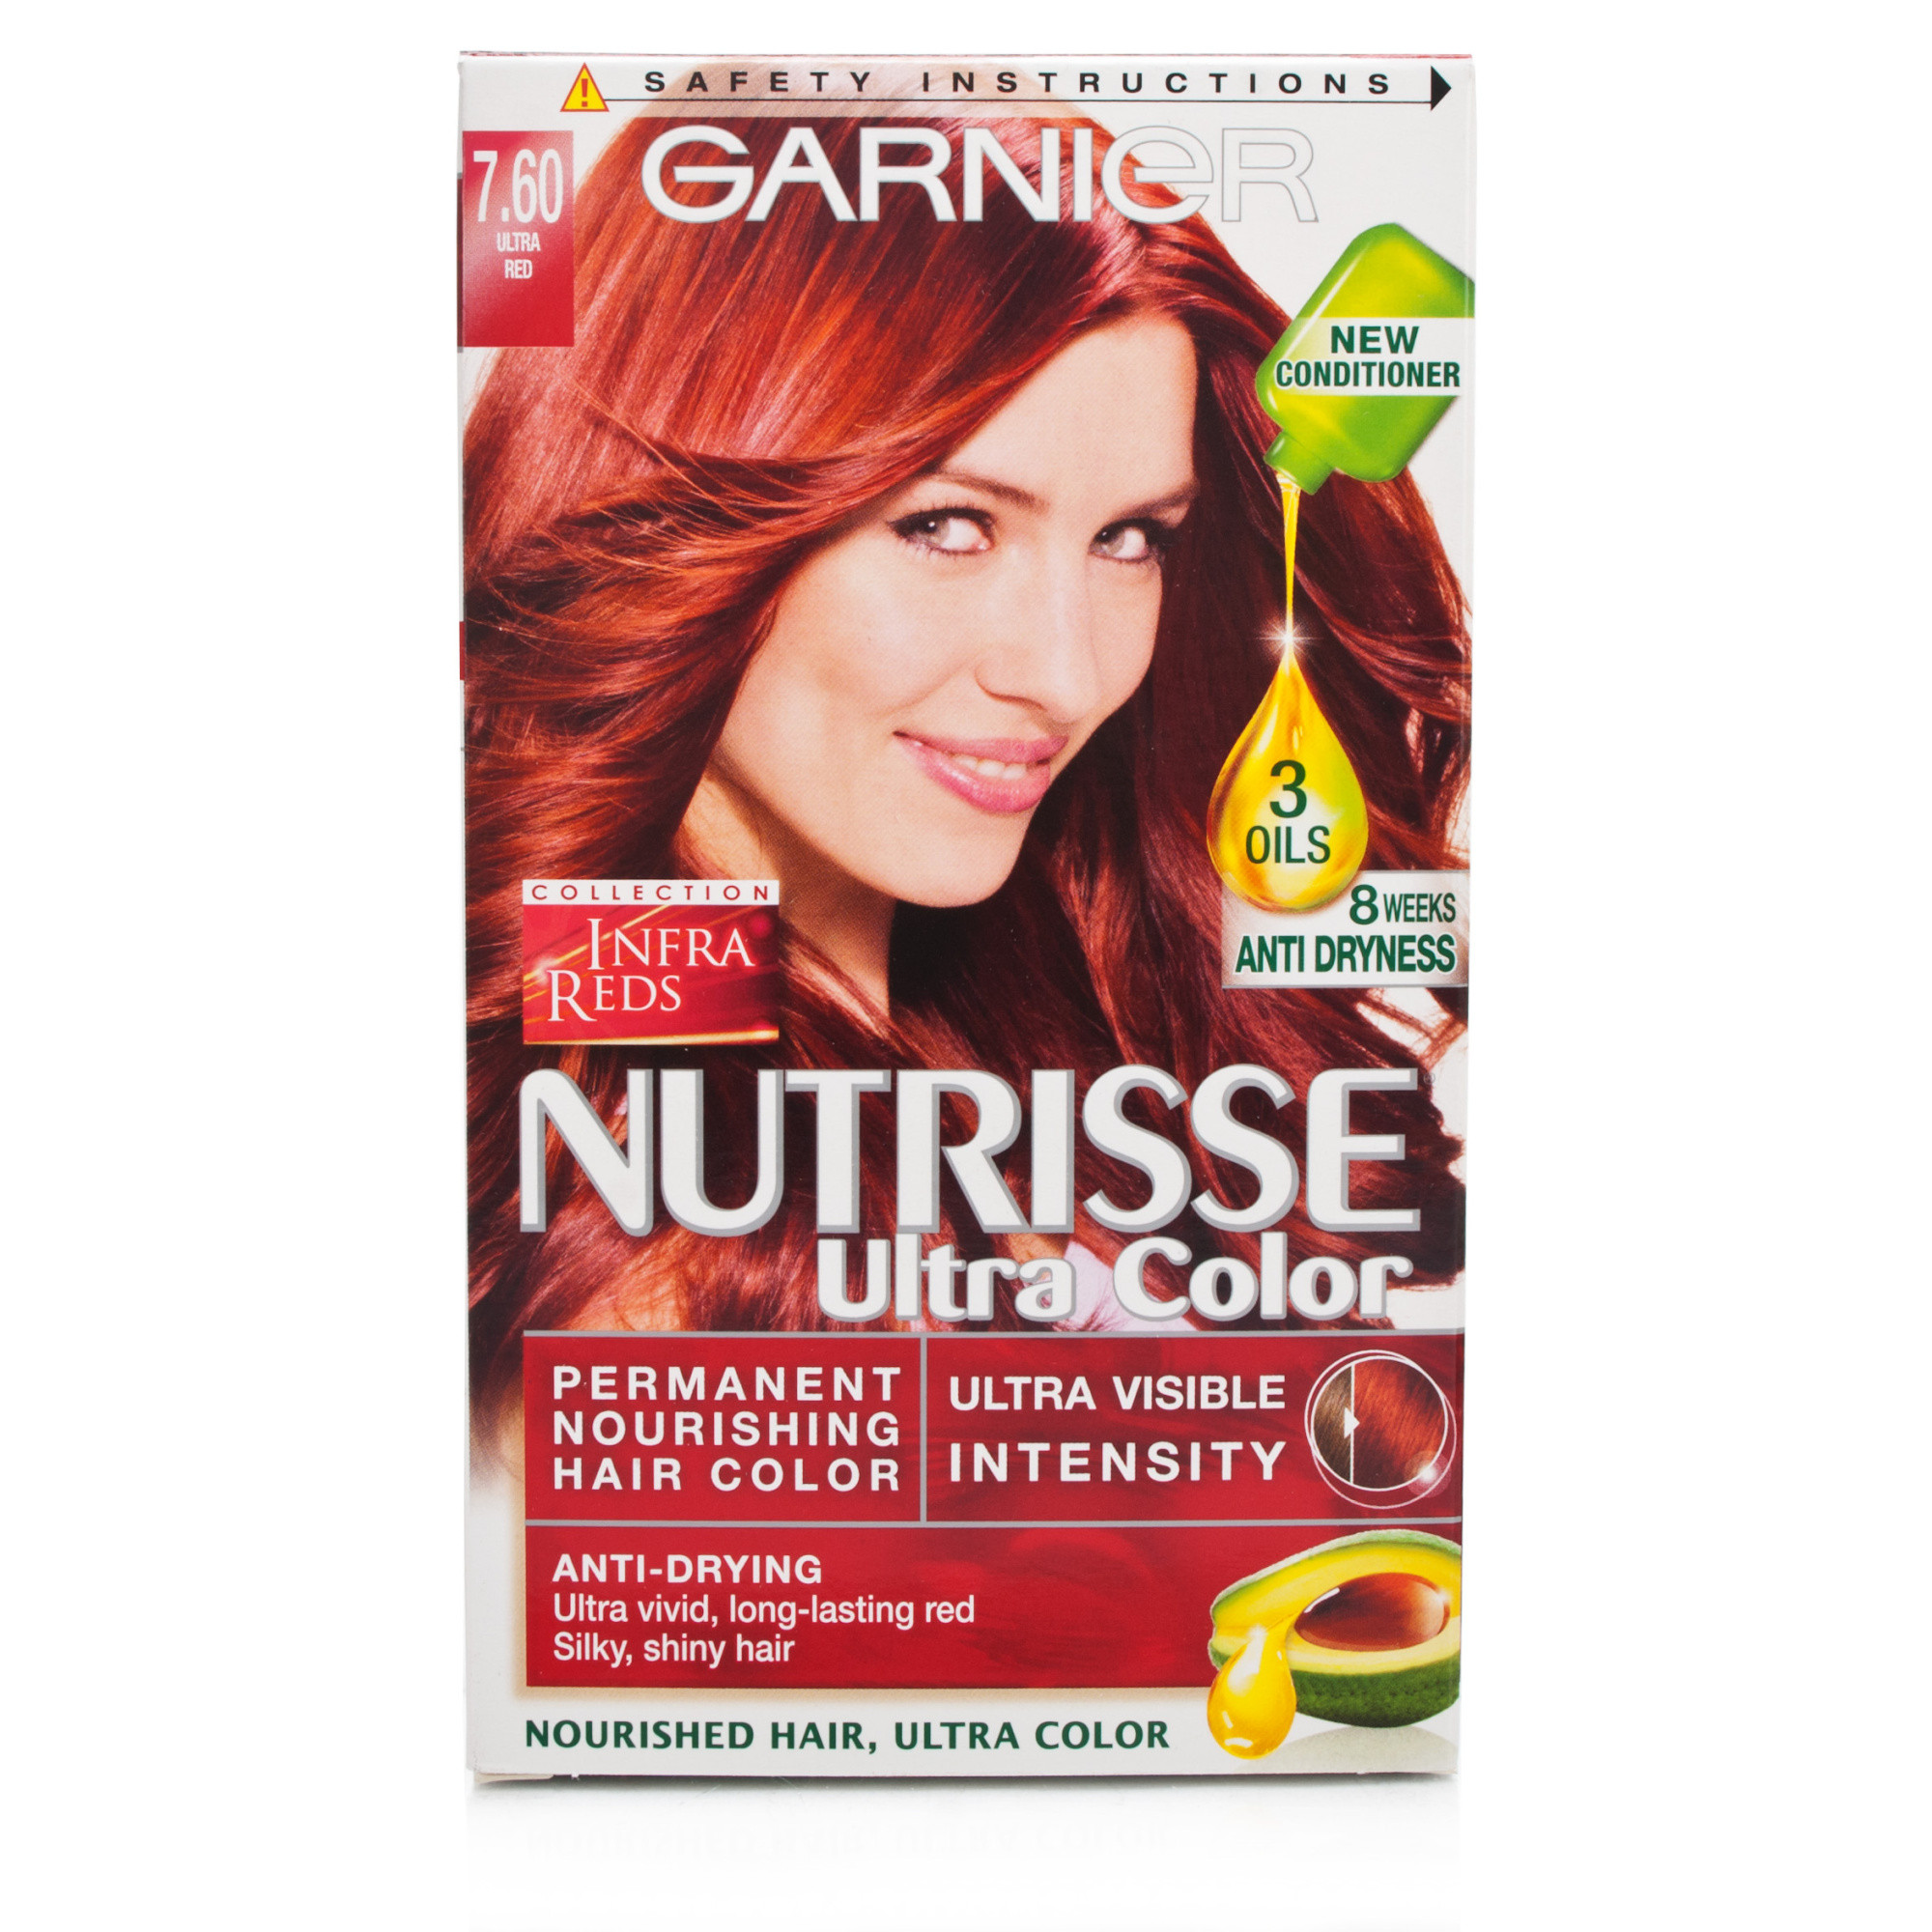 Garnier nutrisse hair color cocoa bean dark golden brownjpg dark garnier nutrisse ultra color hair color chart dark brown hairs nvjuhfo Image collections